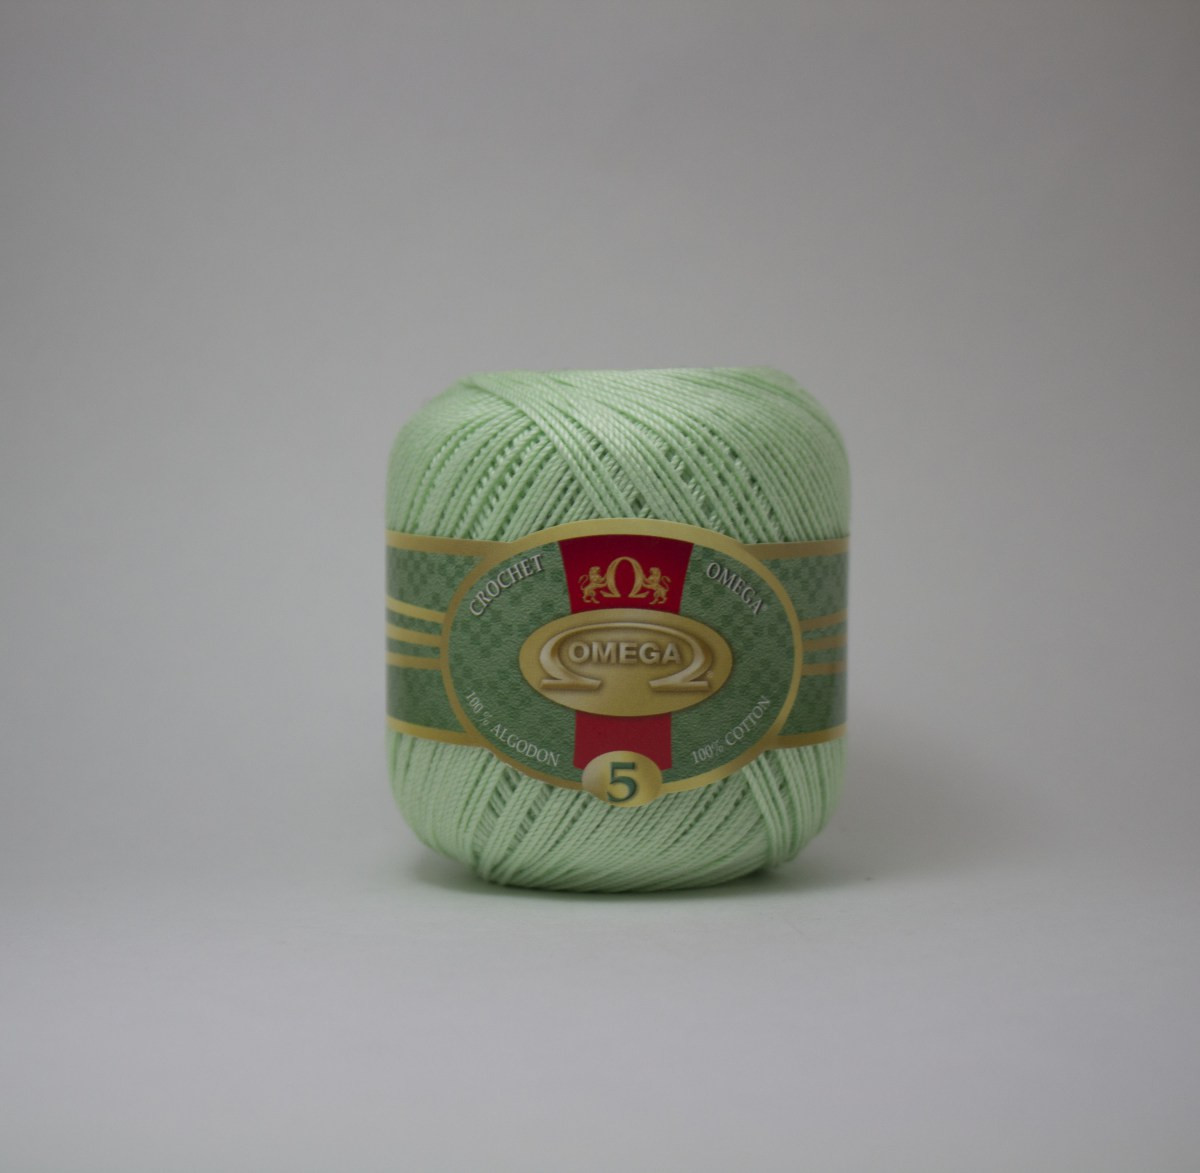 Omega Yarn New Crochet Omega 5 Yarn Mint – Milart Marroquin Of Awesome 49 Pictures Omega Yarn